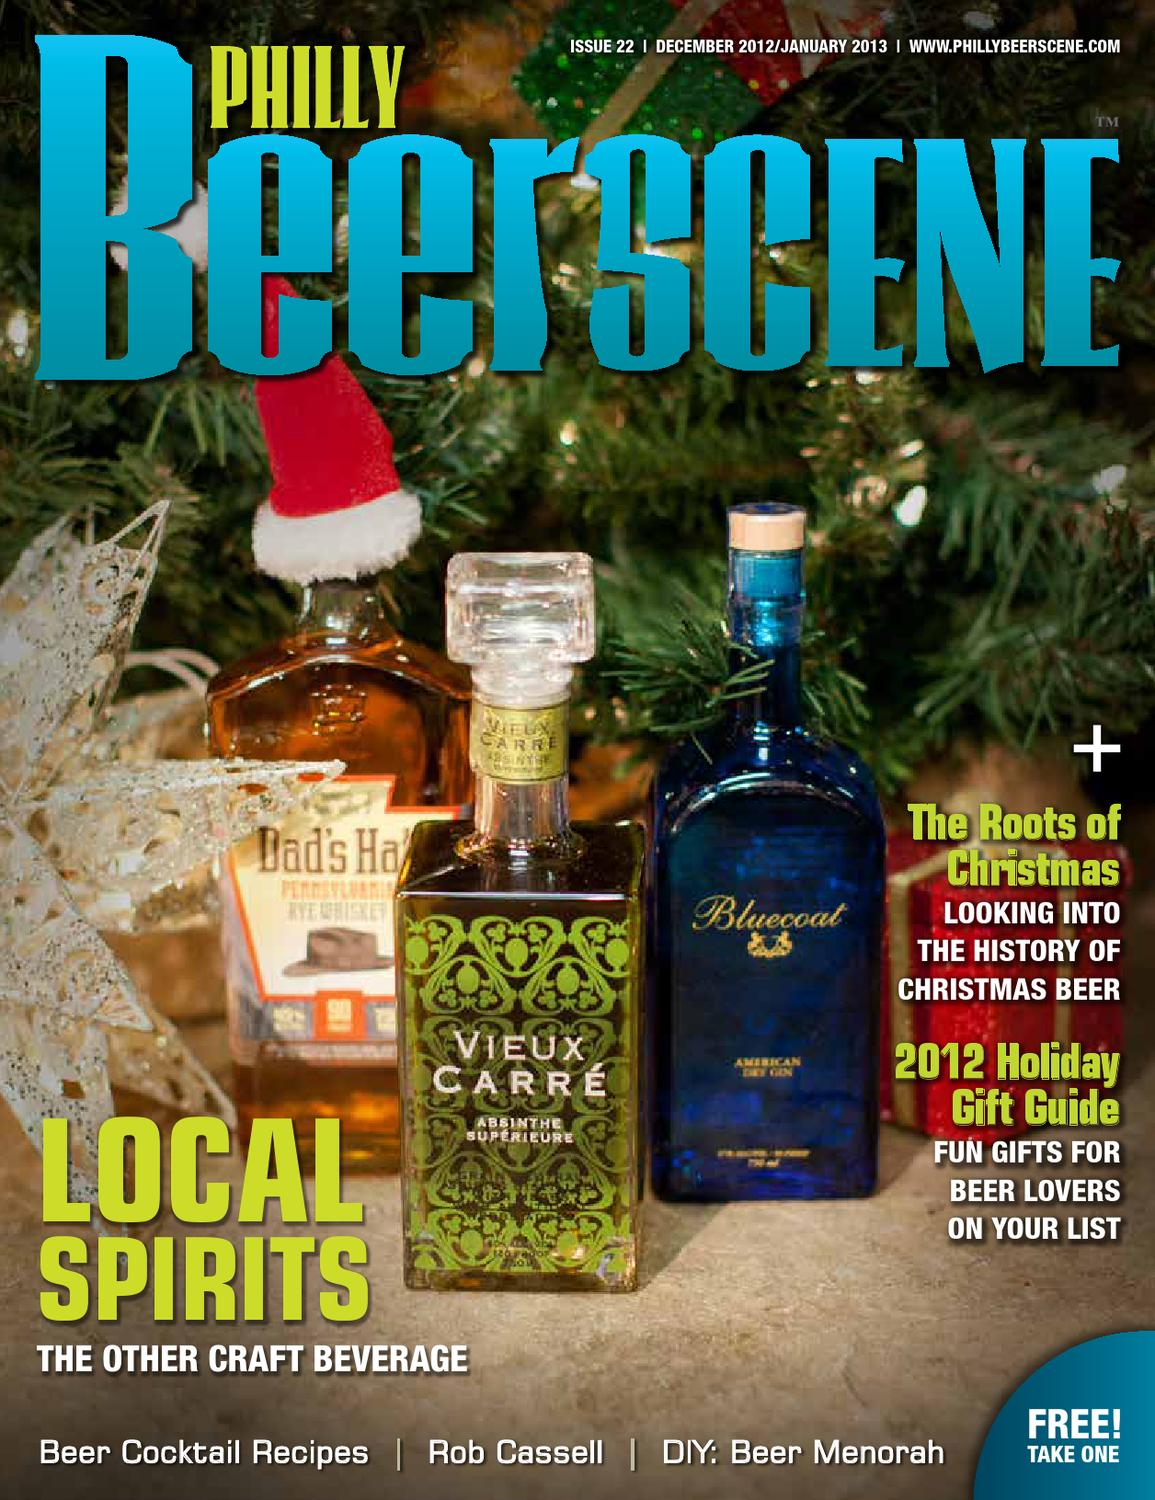 December January Philly Beer Scene by Philly Beer Scene - issuu ffd0623421a9